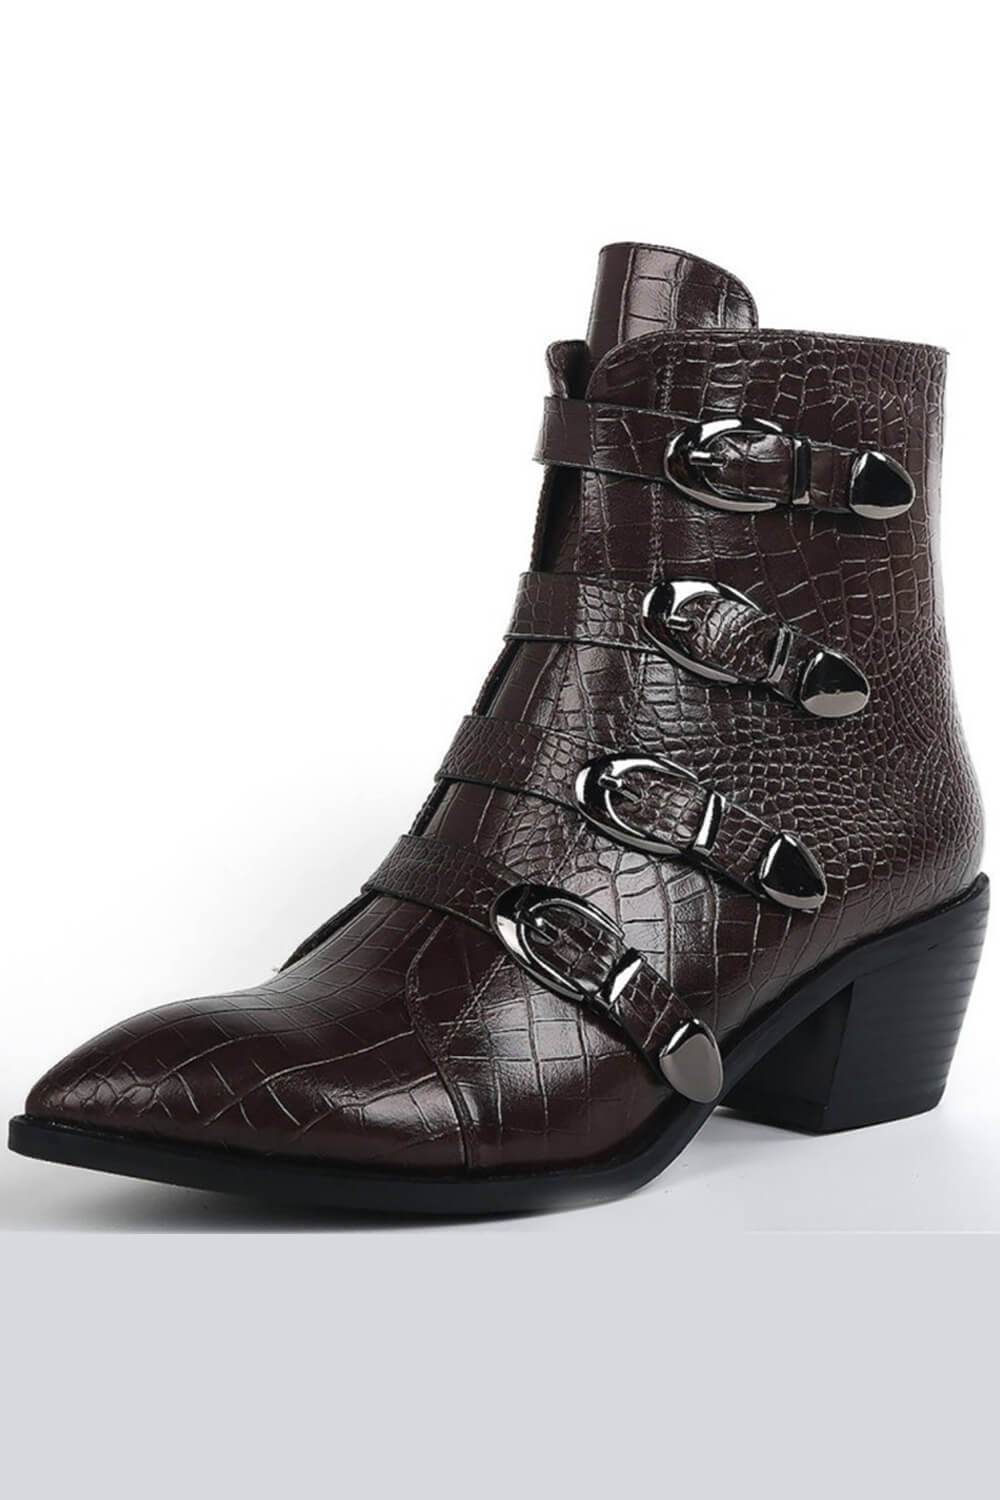 Coffee Croc Ankle Boots With Buckle Detail (4110248476731)